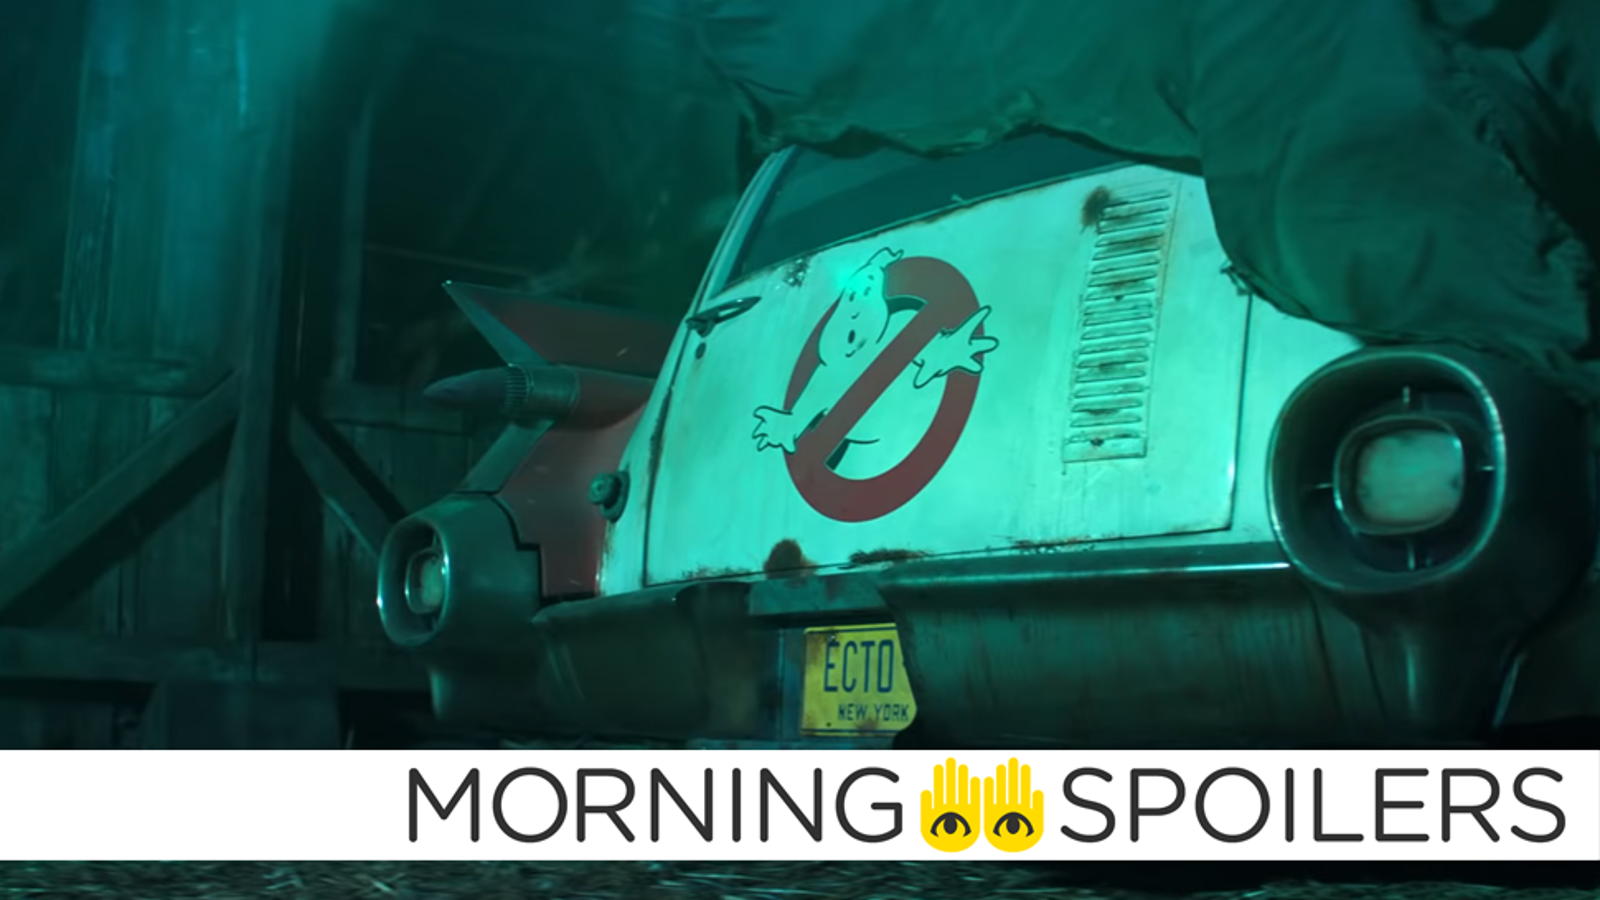 There's Already New Rumors About the Stars of the Next Ghostbusters